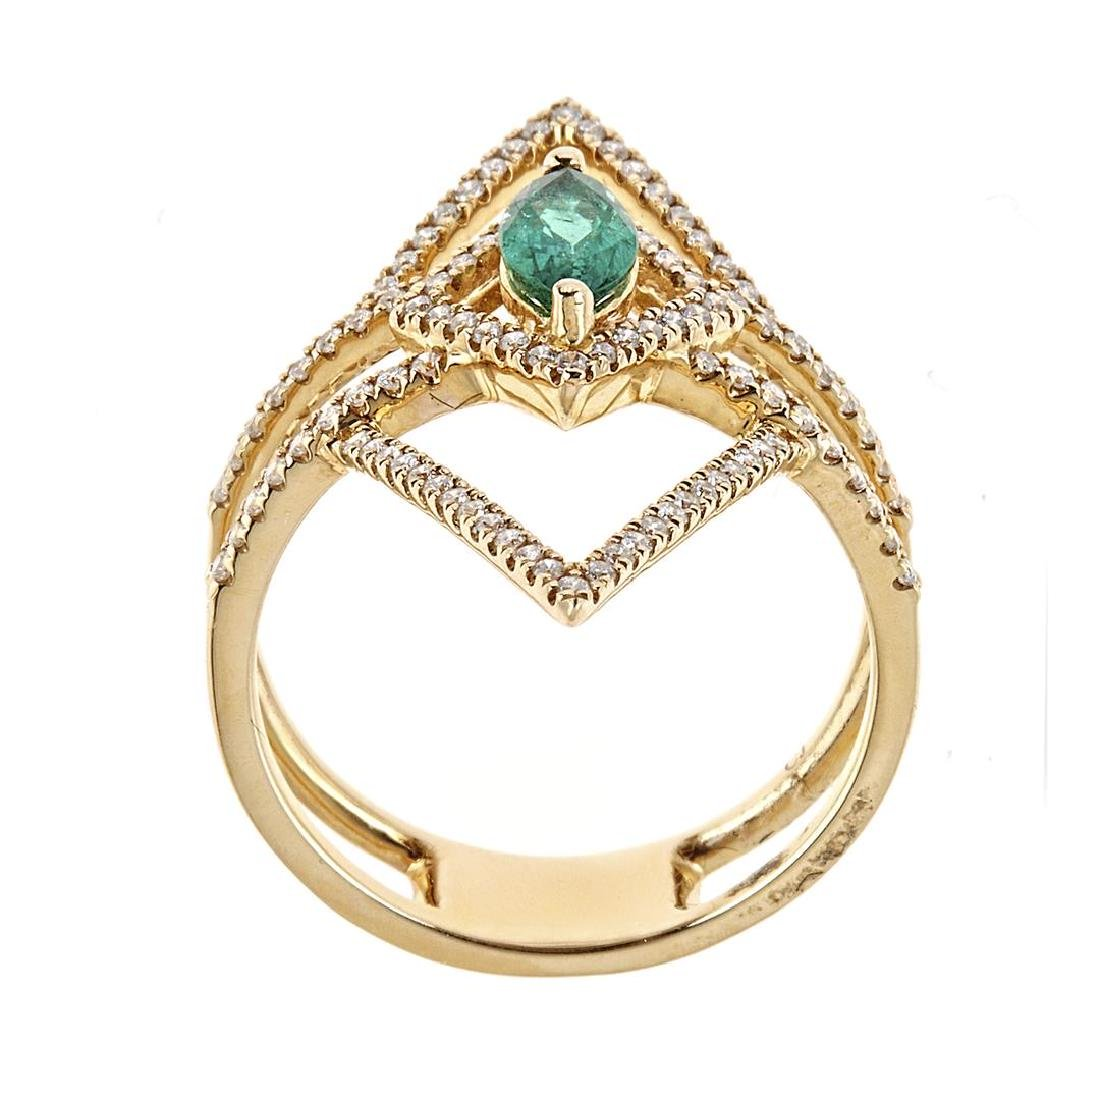 0.47 ctw Emerald and Diamond Ring - 18KT Yellow Gold - 2